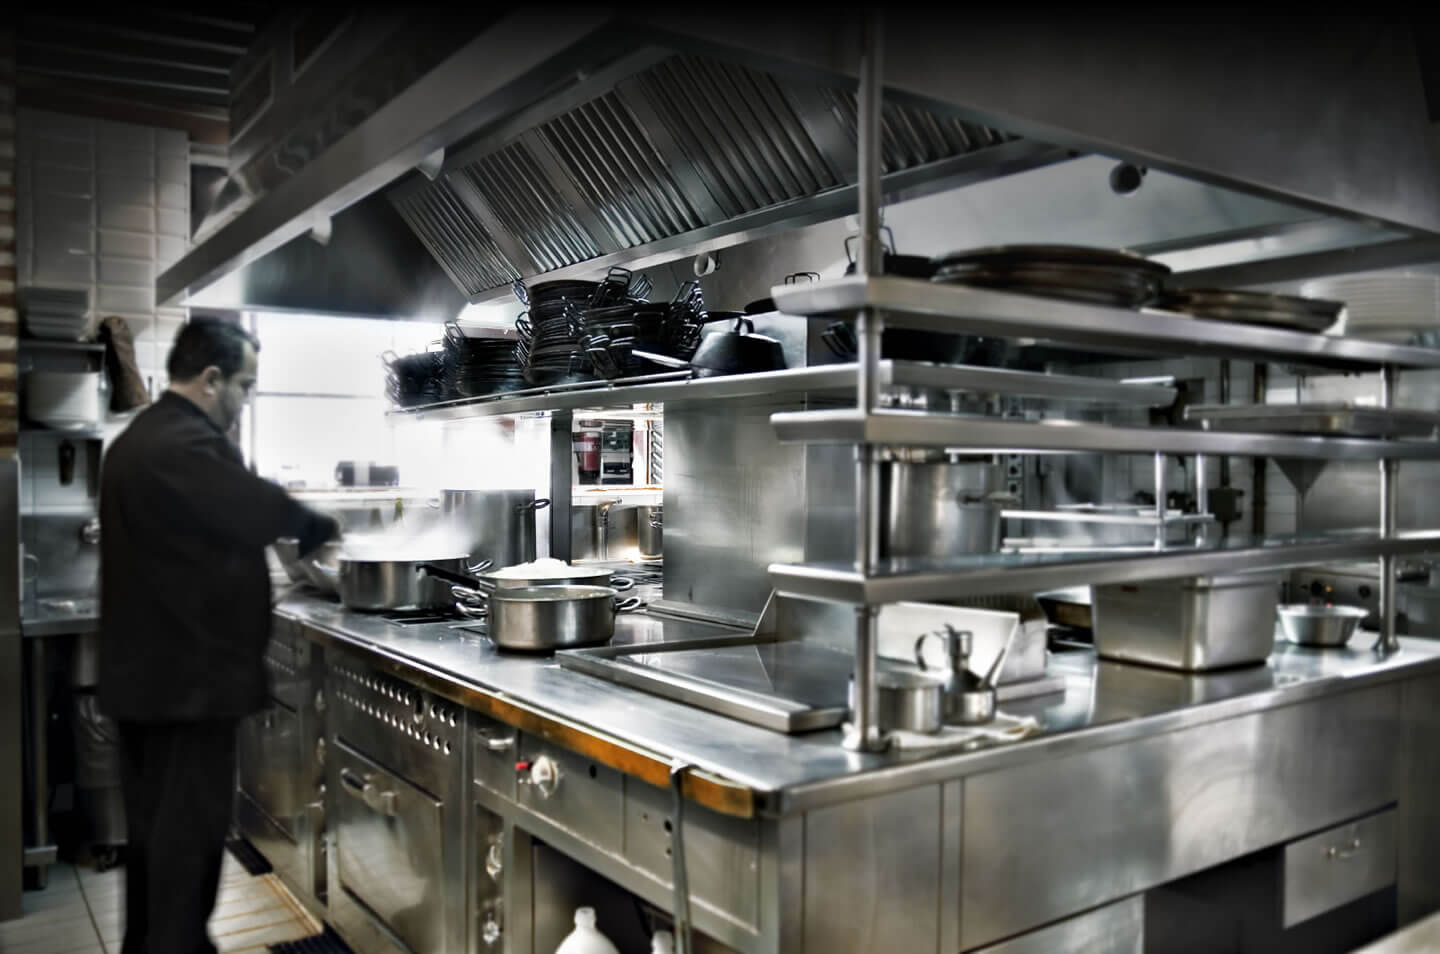 restaurant orlando photo get commercial of cleaning hood fl states l services quote home kitchen united biz